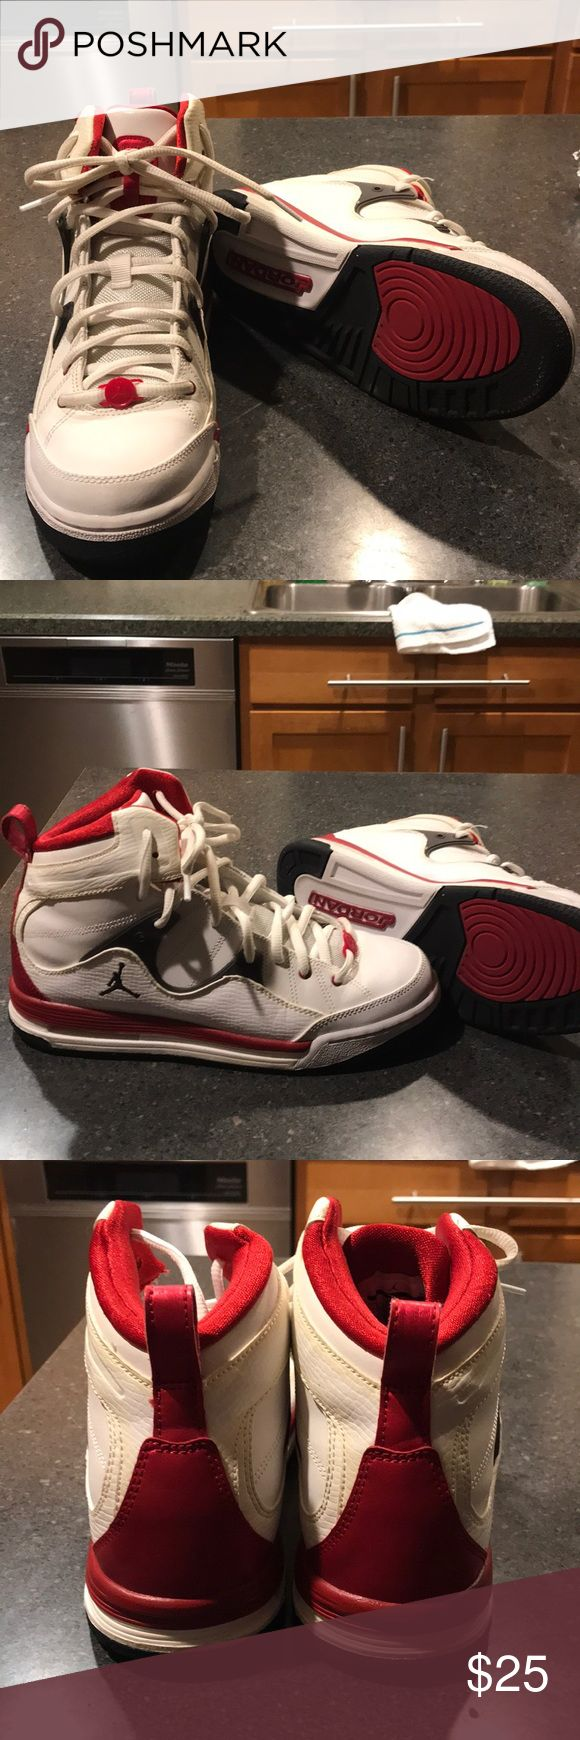 Red and White Jordans Size 7 youth! Jordan Shoes Sneakers